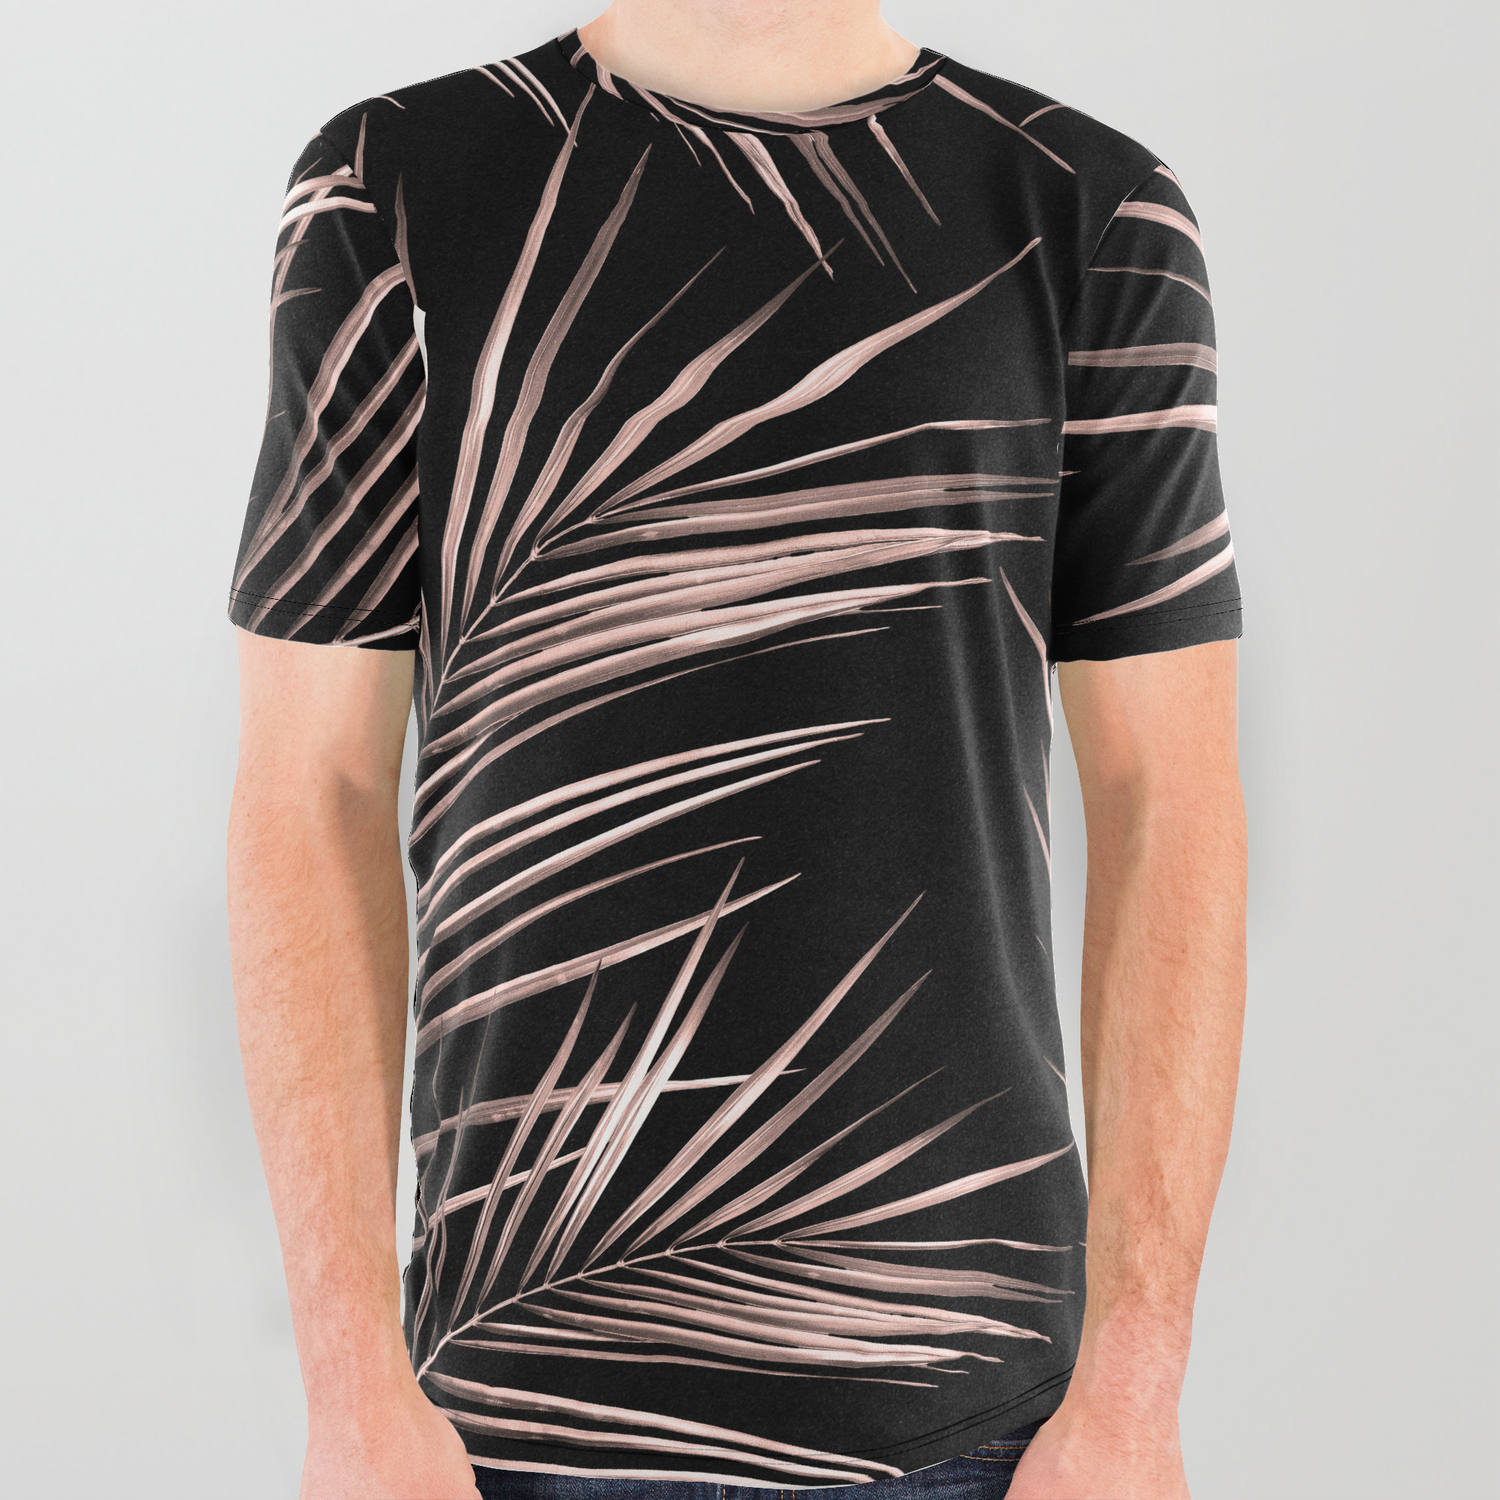 b23726dc3 Rosegold Palm Tree Leaves on Midnight Black All Over Graphic Tee by ...